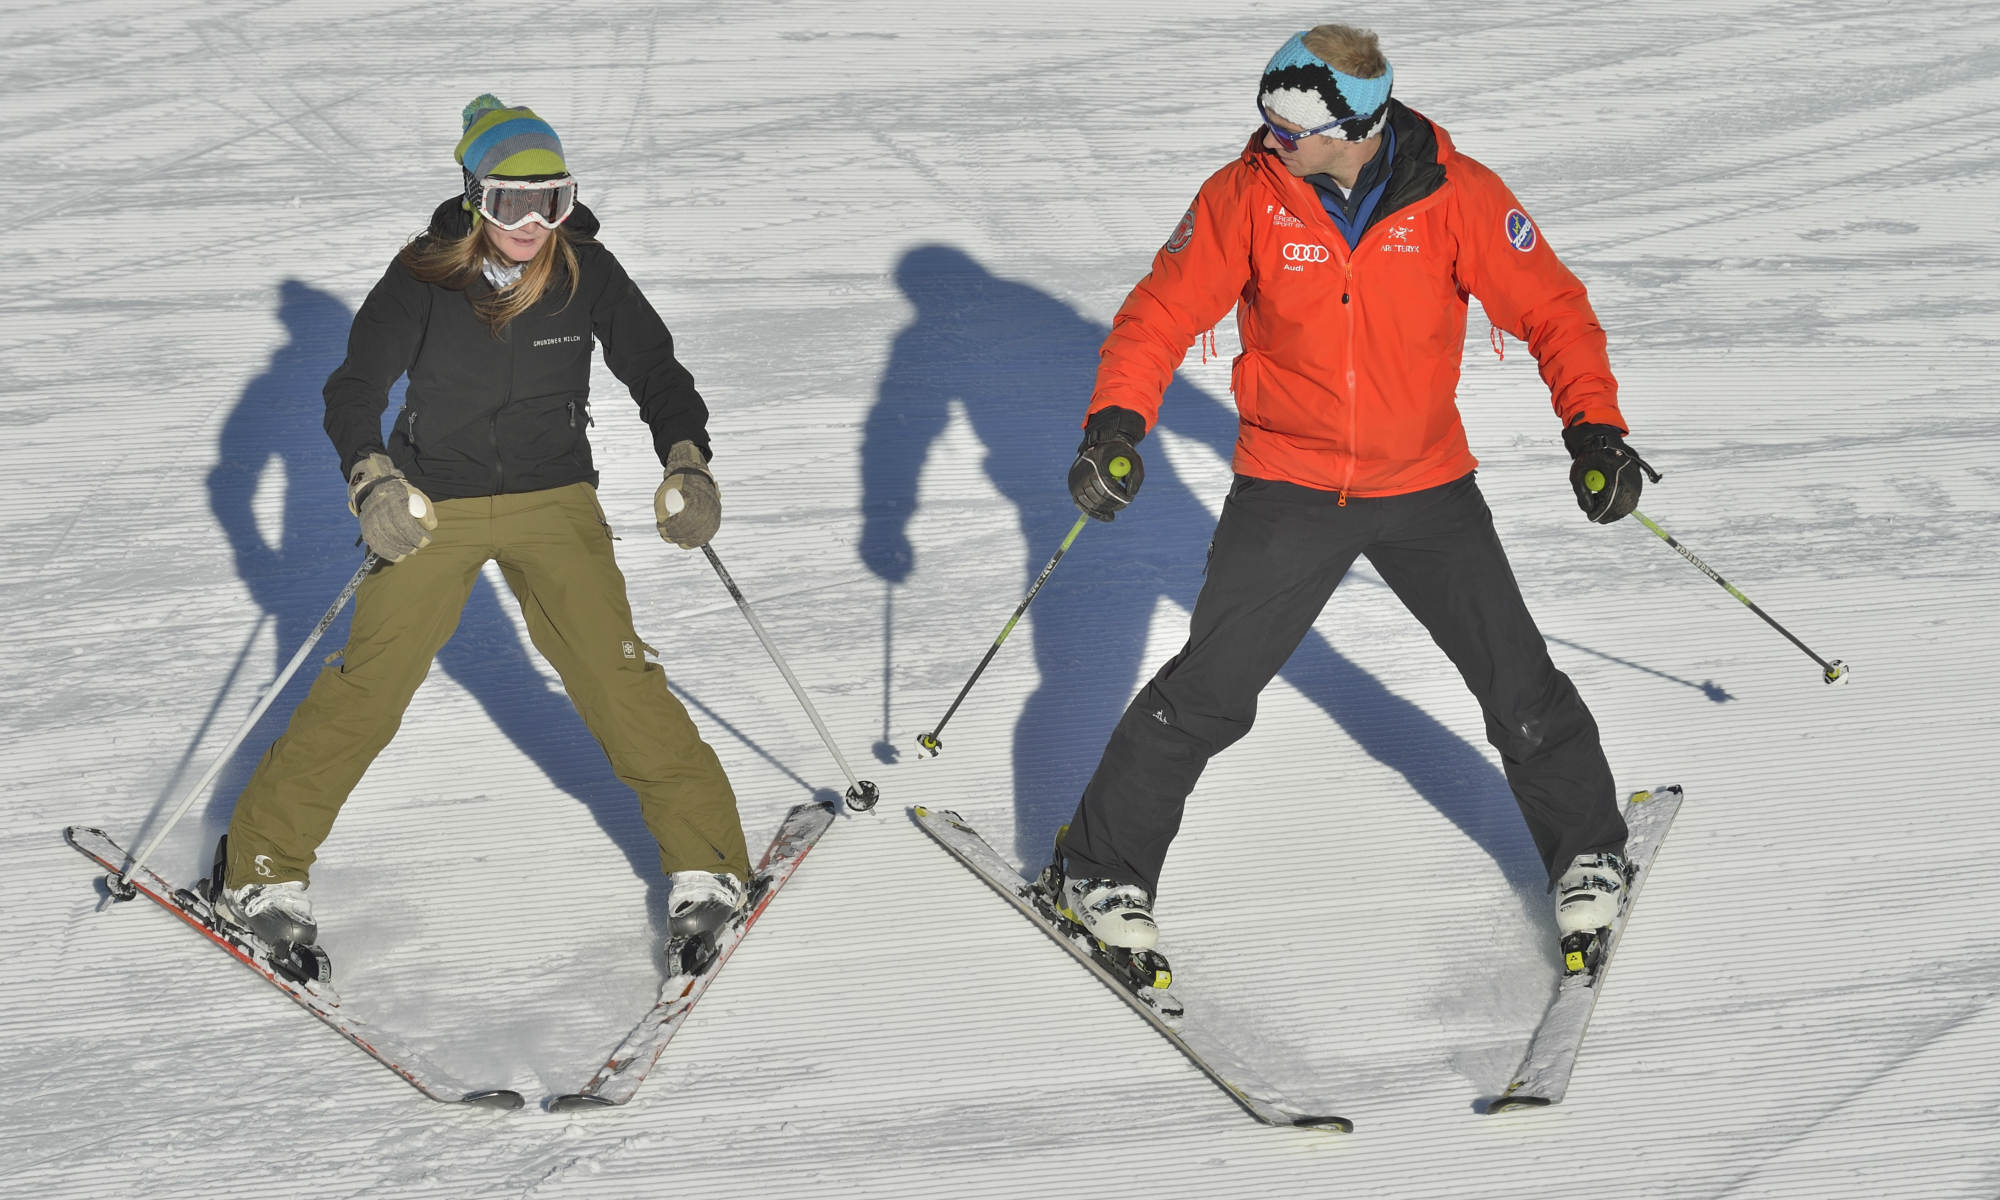 An adult skier during a beginners lesson.